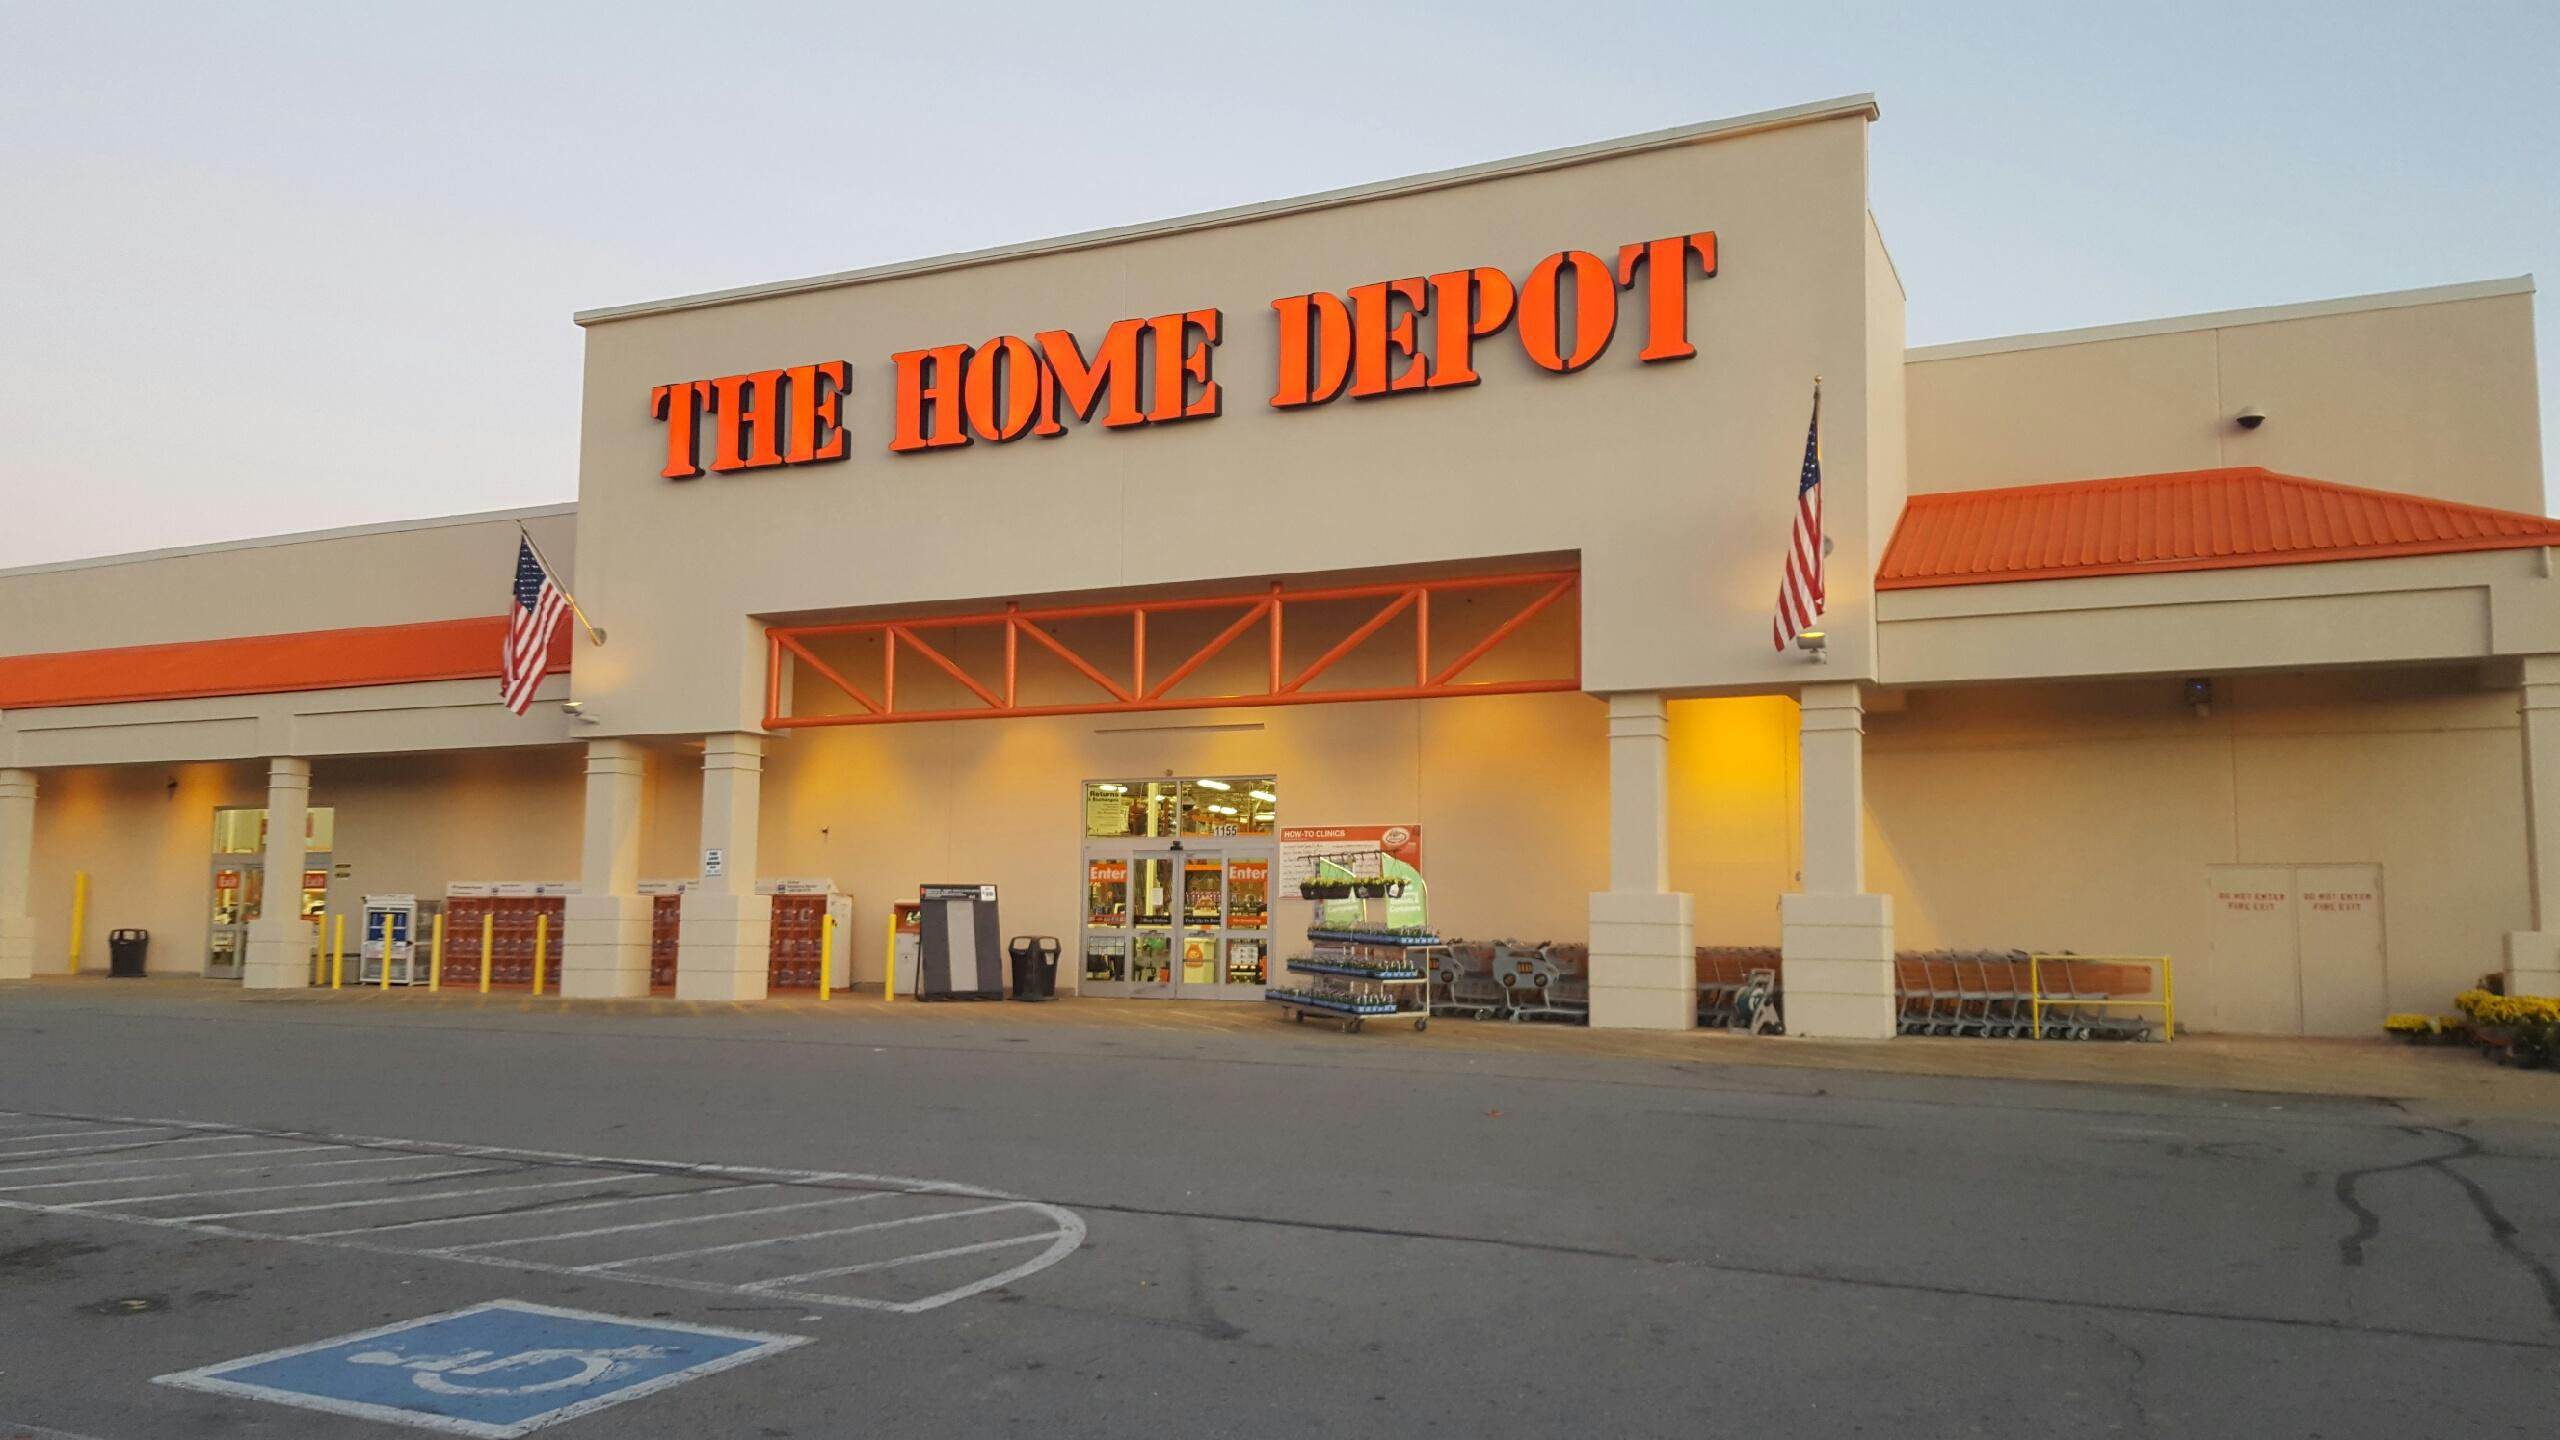 The Home Depot 1155 Bell Rd Antioch TN Home Depot MapQuest